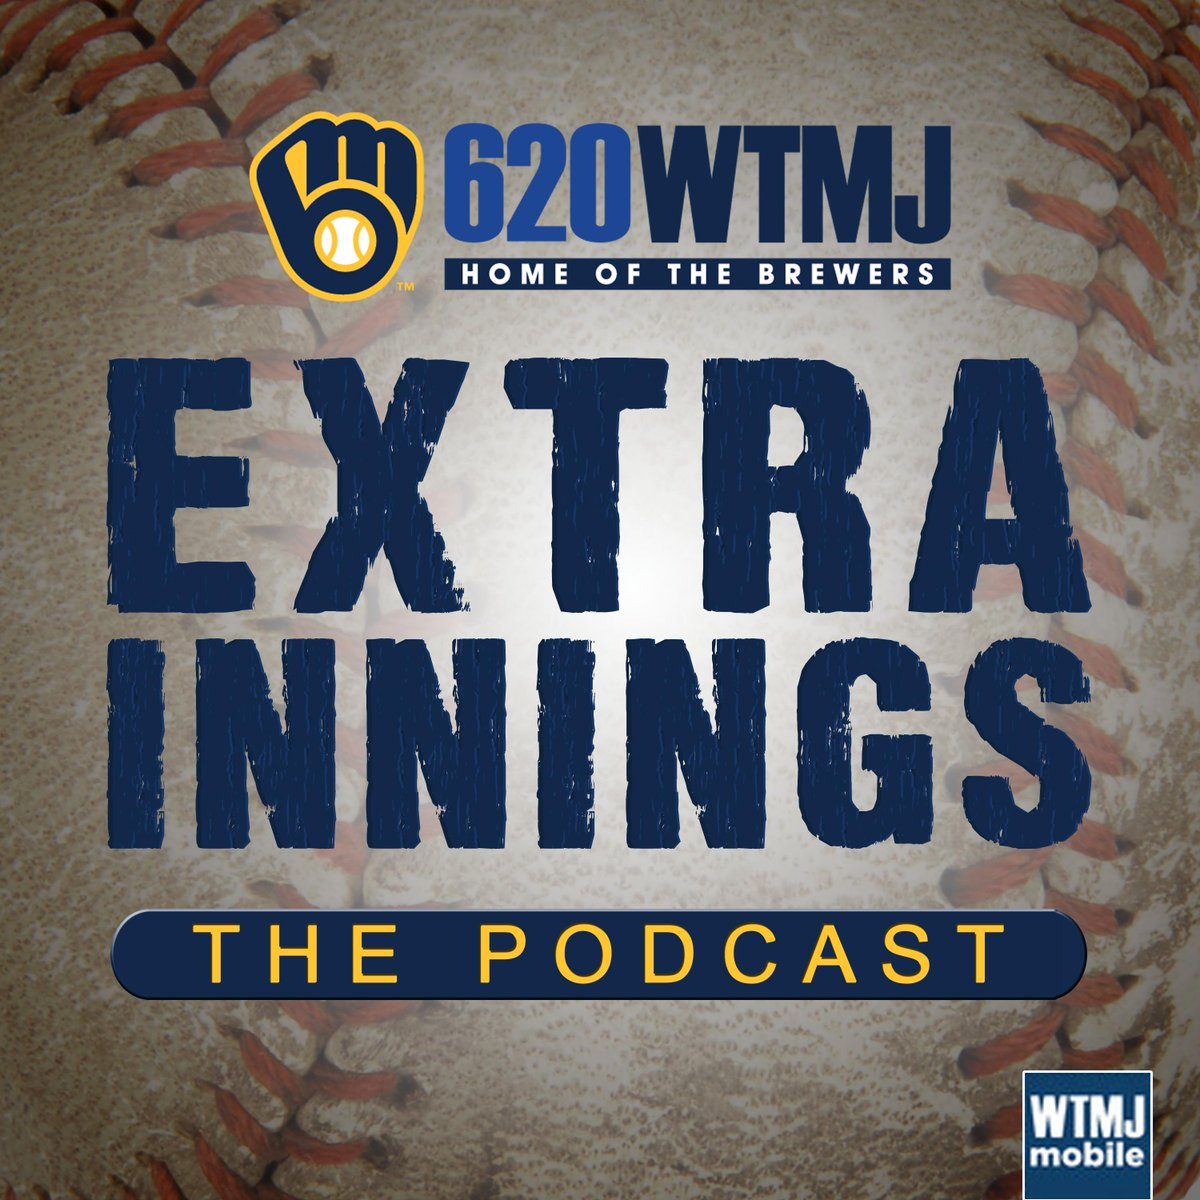 A new @620wtmj Mobile #Brewers Extra Innings Podcast is here! The @Brewers are playoff-bound! Now, what to make of that?!?! @ByAndrewWagner of @WiStateJournal / @MadisonSport is the featured guest. Listen: https://t.co/WVQ0k5b2xq #ThisIsMyCrew https://t.co/H1bfx5stO1